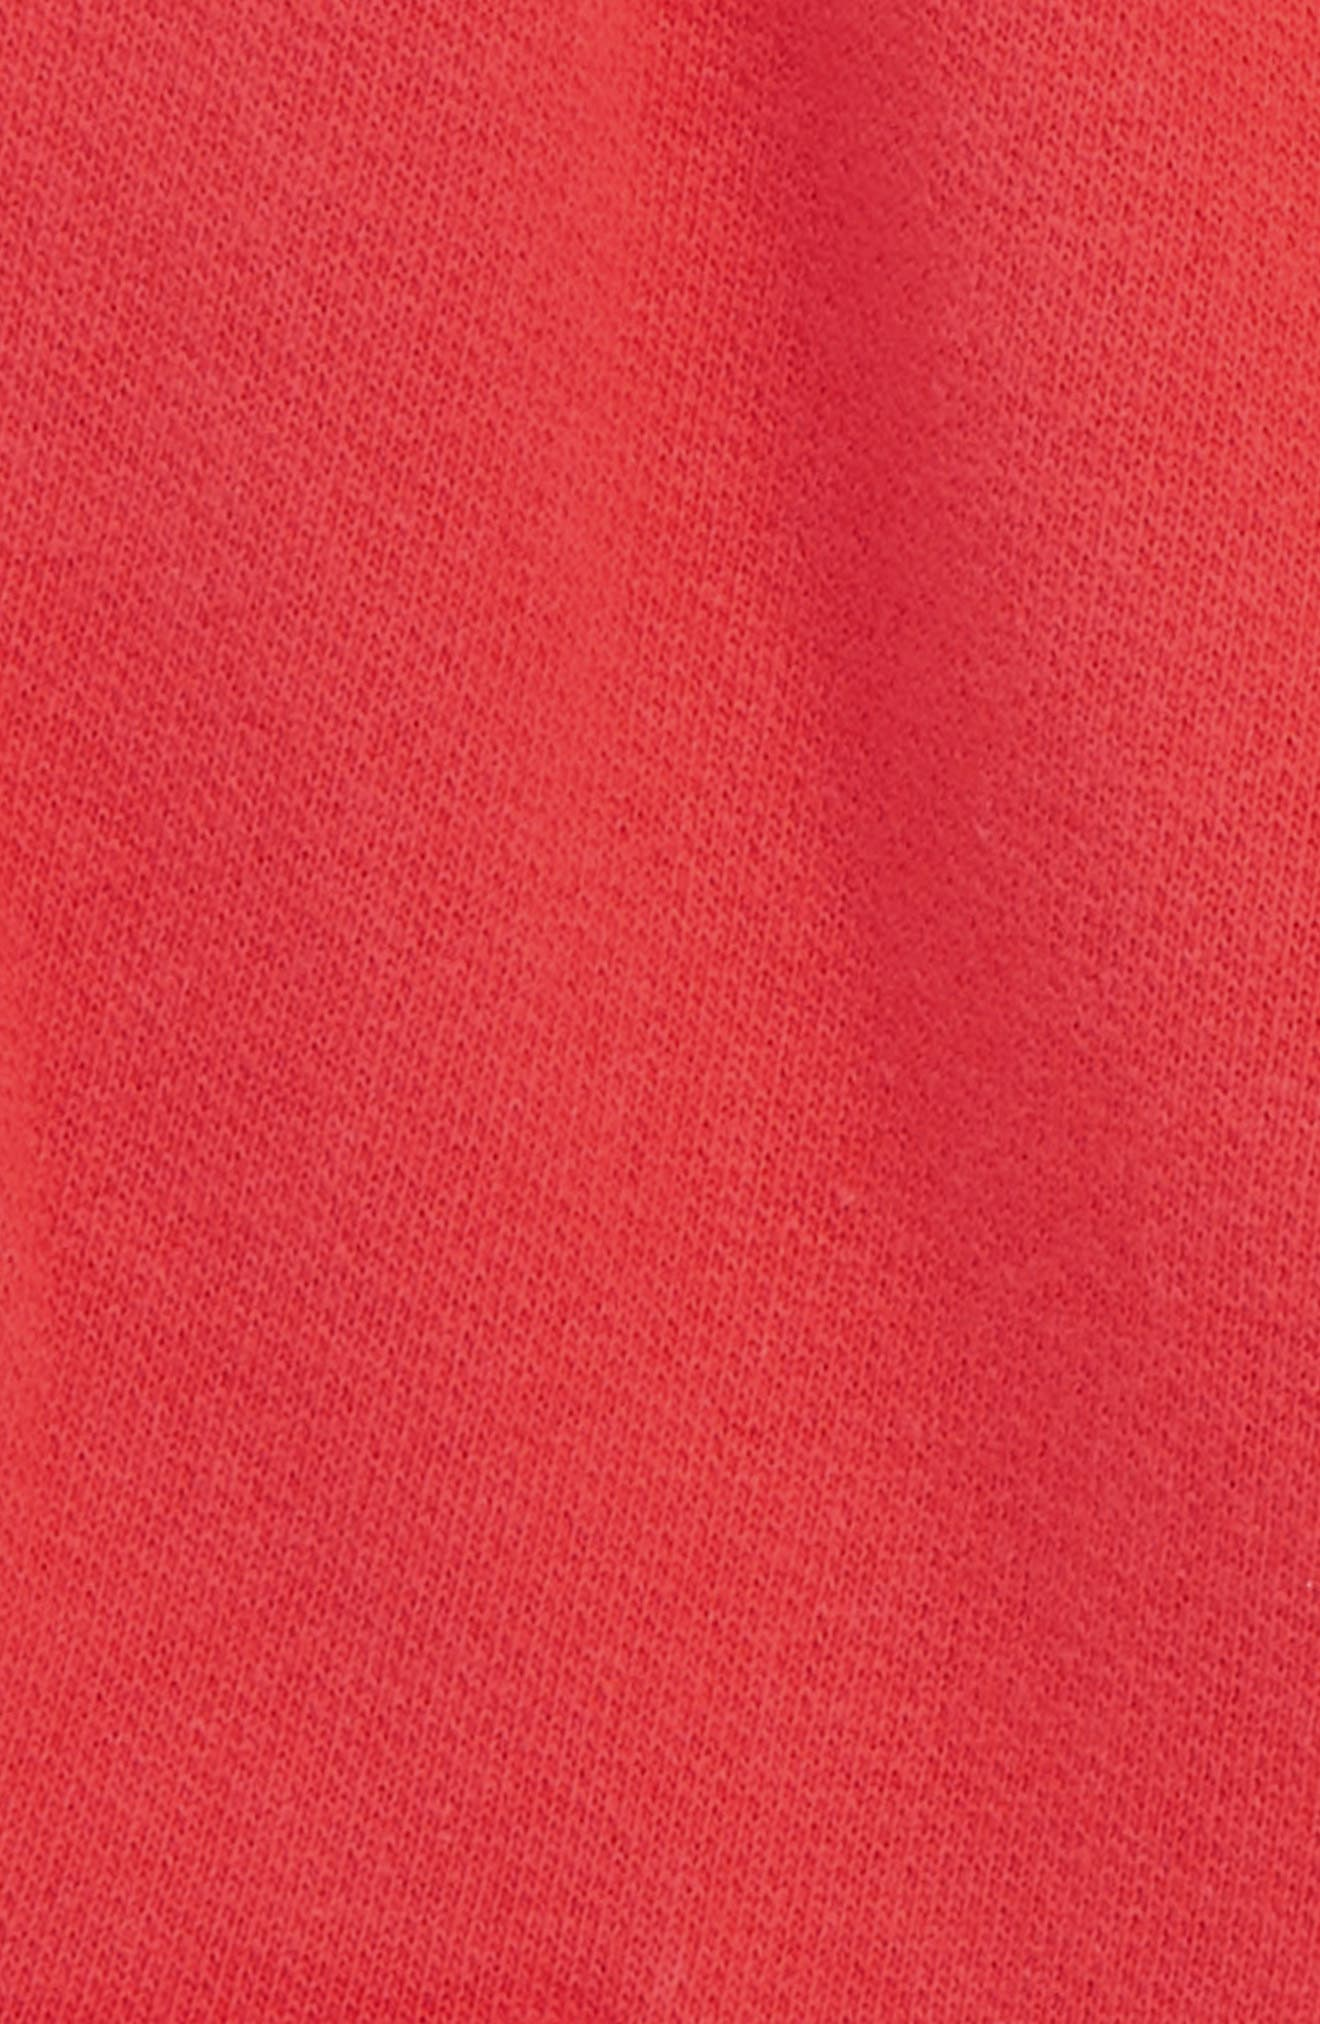 Jersey Cargo Shorts,                             Alternate thumbnail 2, color,                             Jam Red